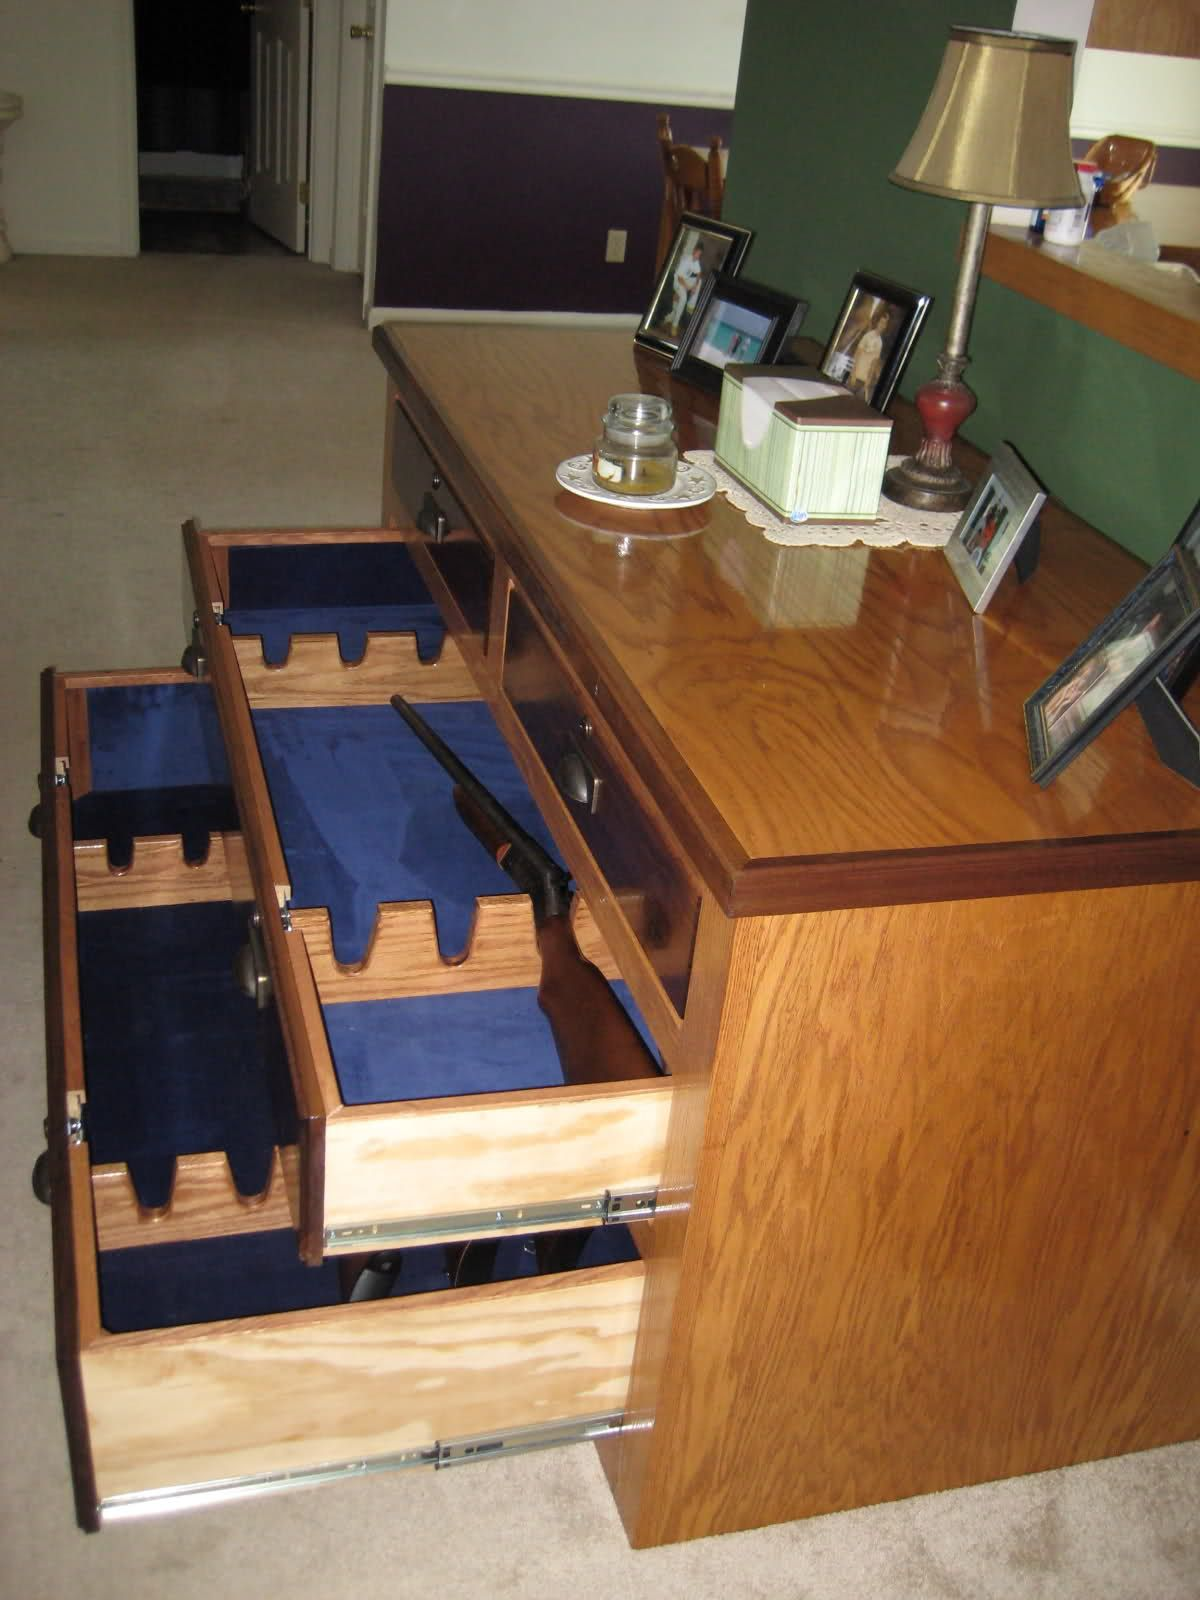 Use an old dresser for a homemade gun cabinet no one would ever use an old dresser for a homemade gun cabinet no one would ever know amipublicfo Image collections